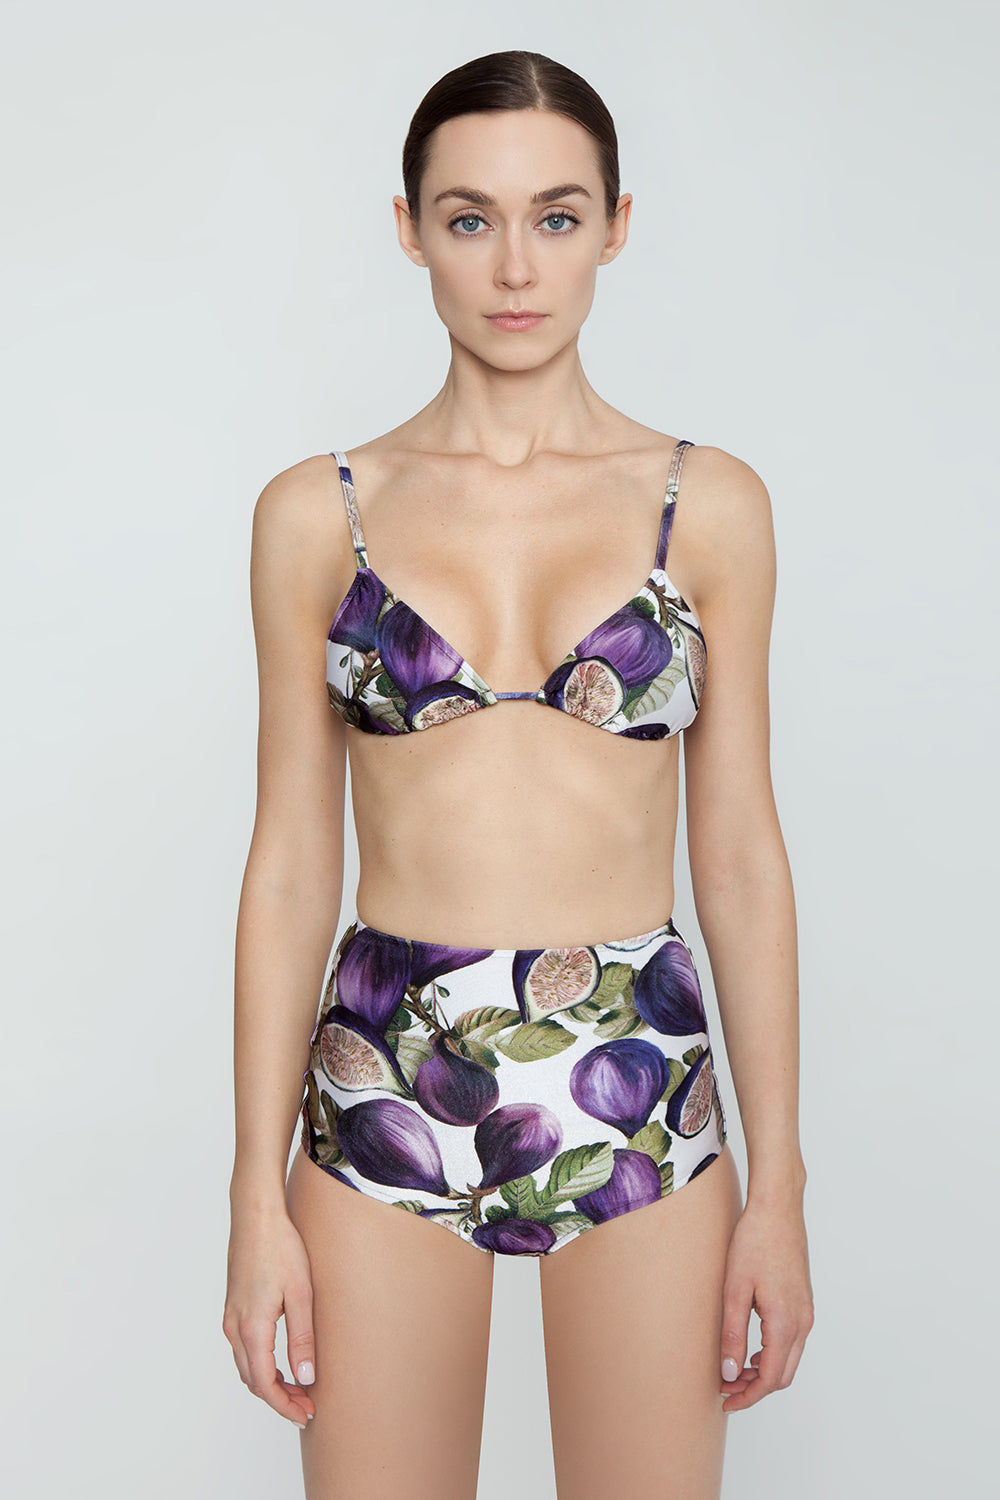 ADRIANA DEGREAS Pull-Over Triangle Bikini Top - Fig Purple Print Bikini Top | Fig Purple Print| Adriana Degreas Triangle Tie Bikini Top - Fig Purple Print. Features:  Classic Triangle top Adjustable halter neck ties Back ties closure Main: 85% polyamide, 15% spandex Front View